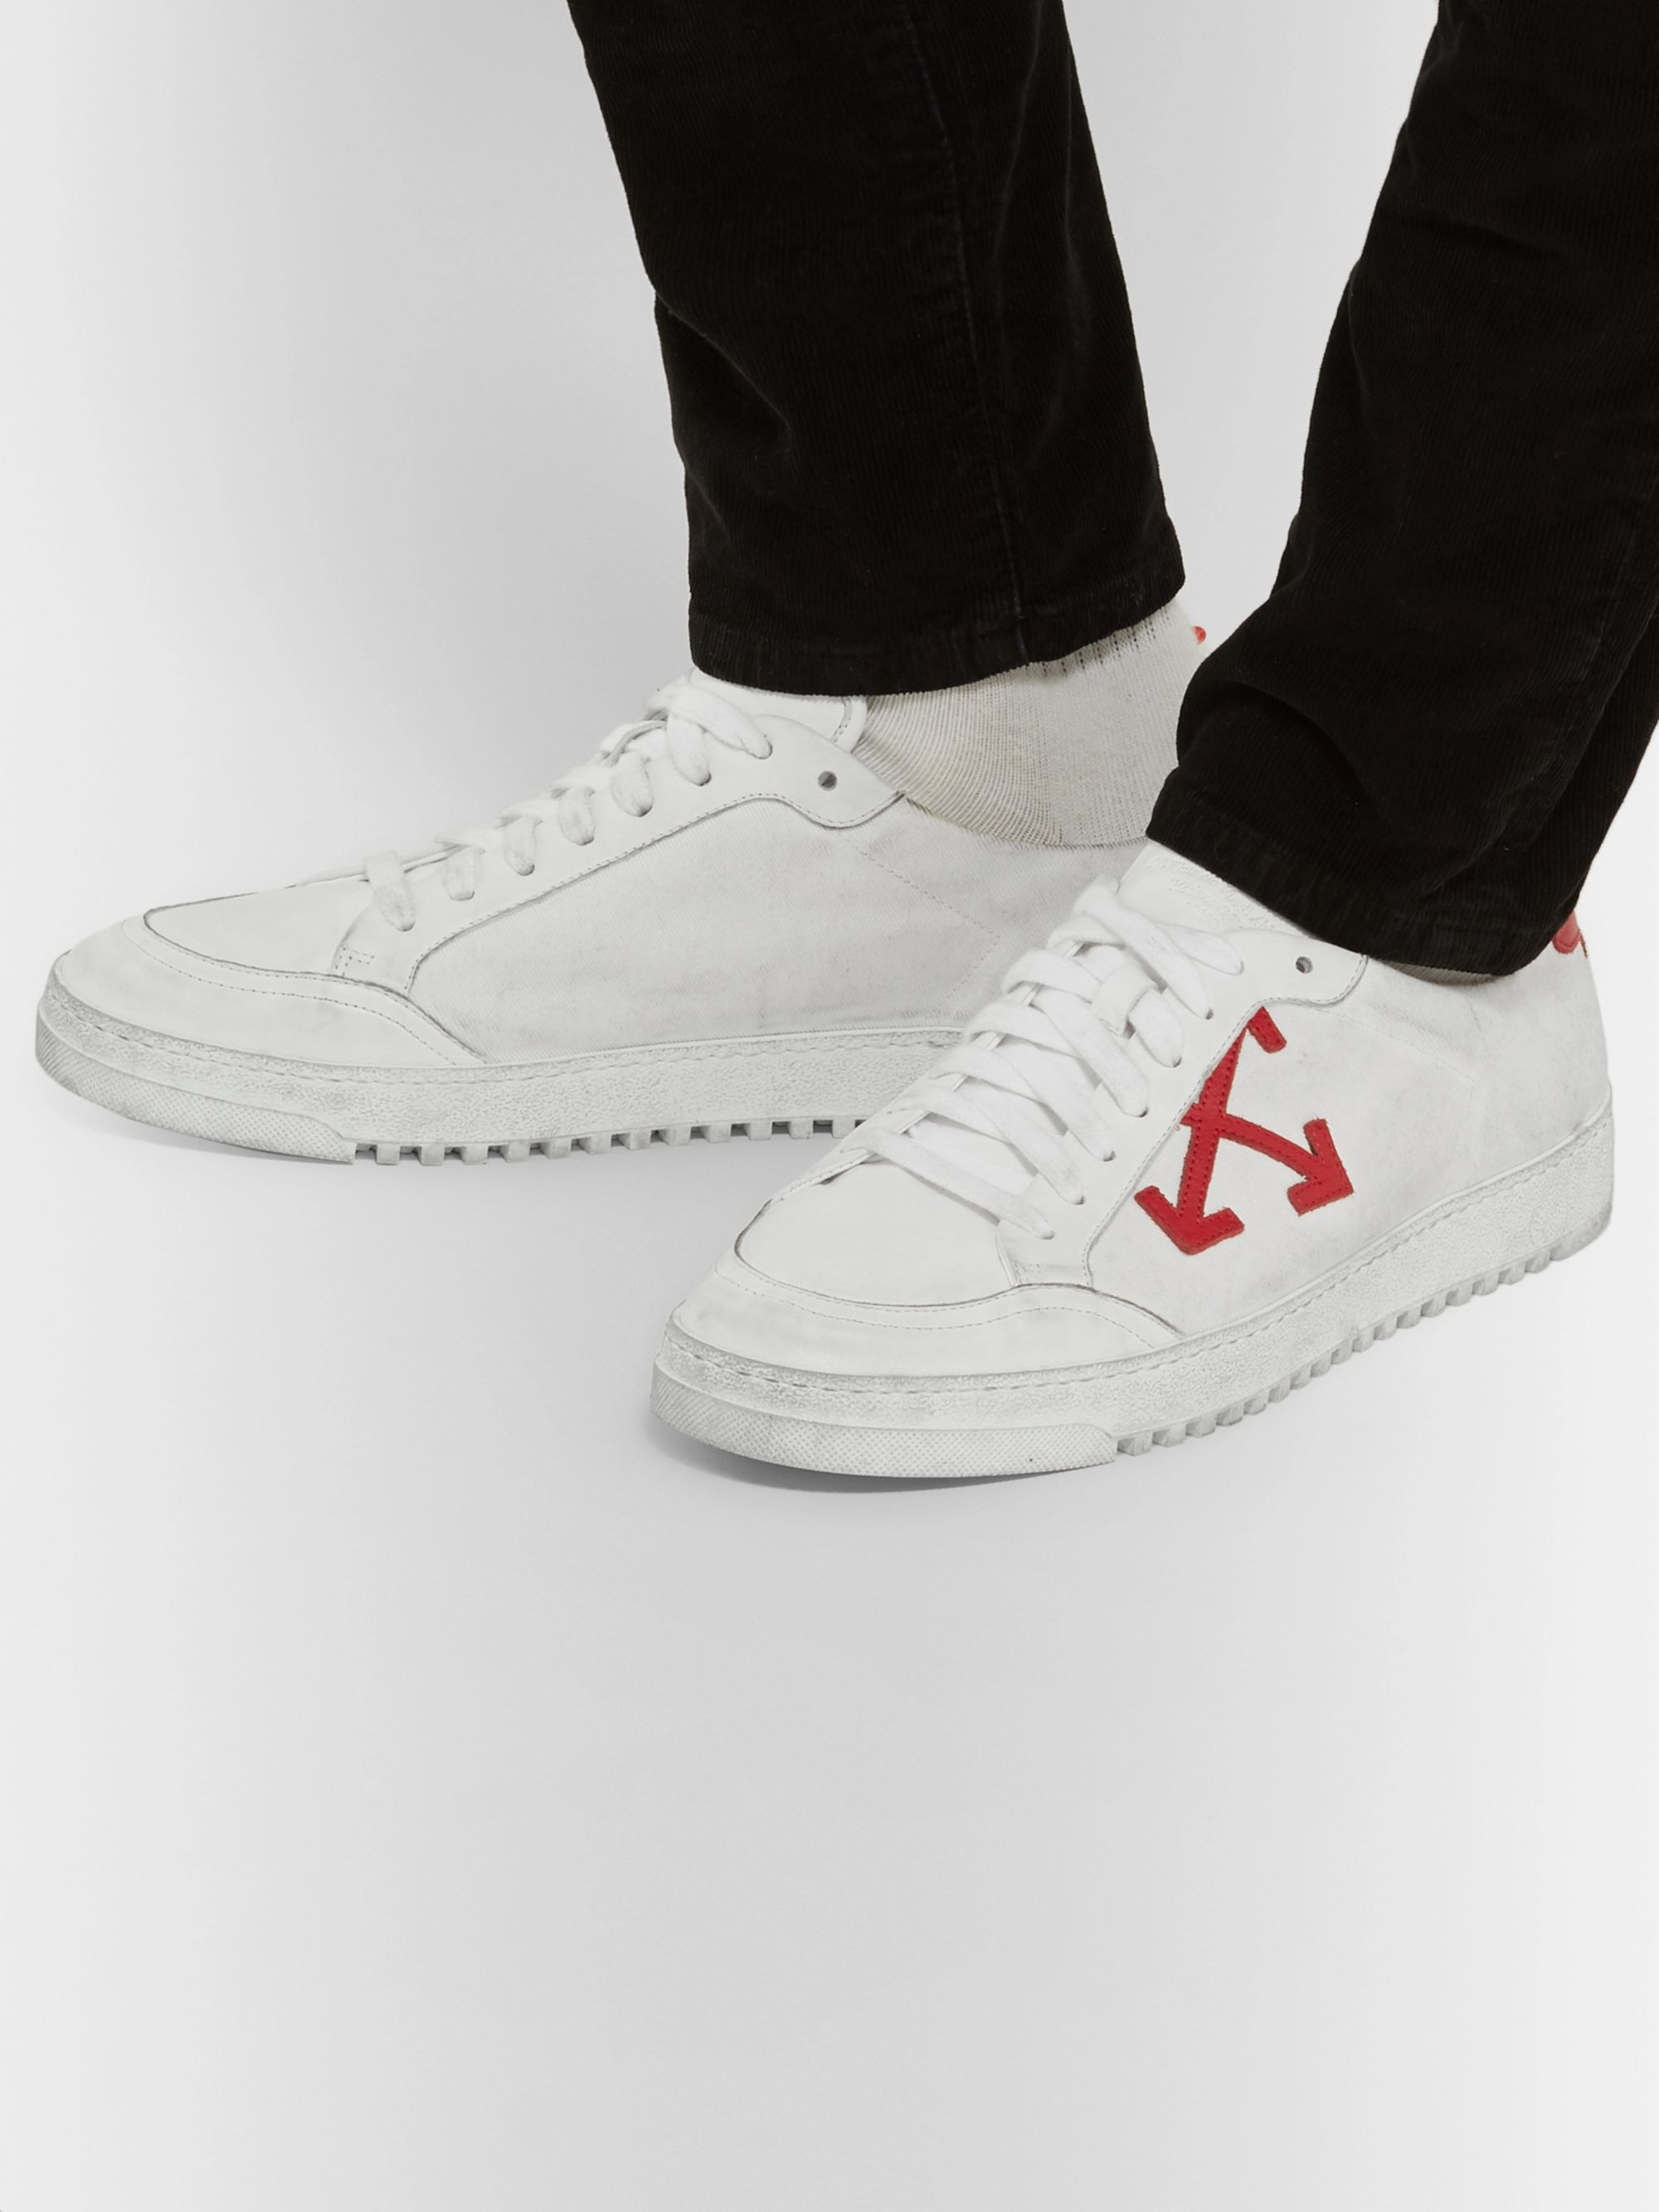 3.0 Polo Distressed Leather Trimmed Twill Sneakers